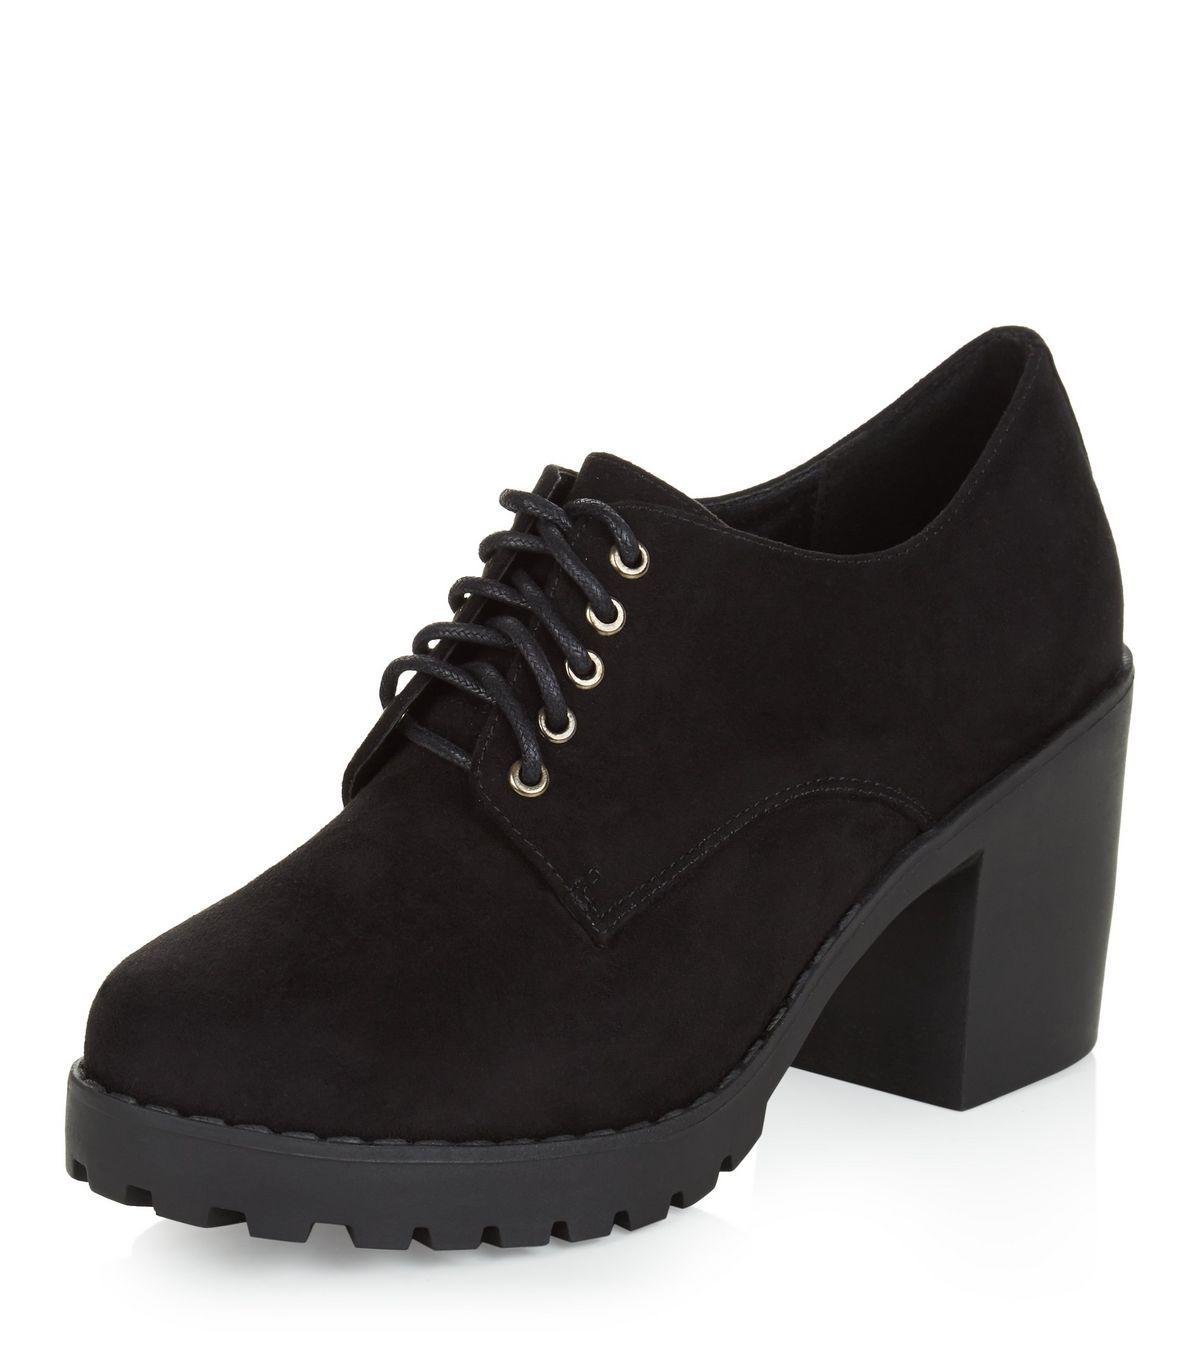 f8e1da8af21f Teens Black Lace Up Block Heel Shoe Boots